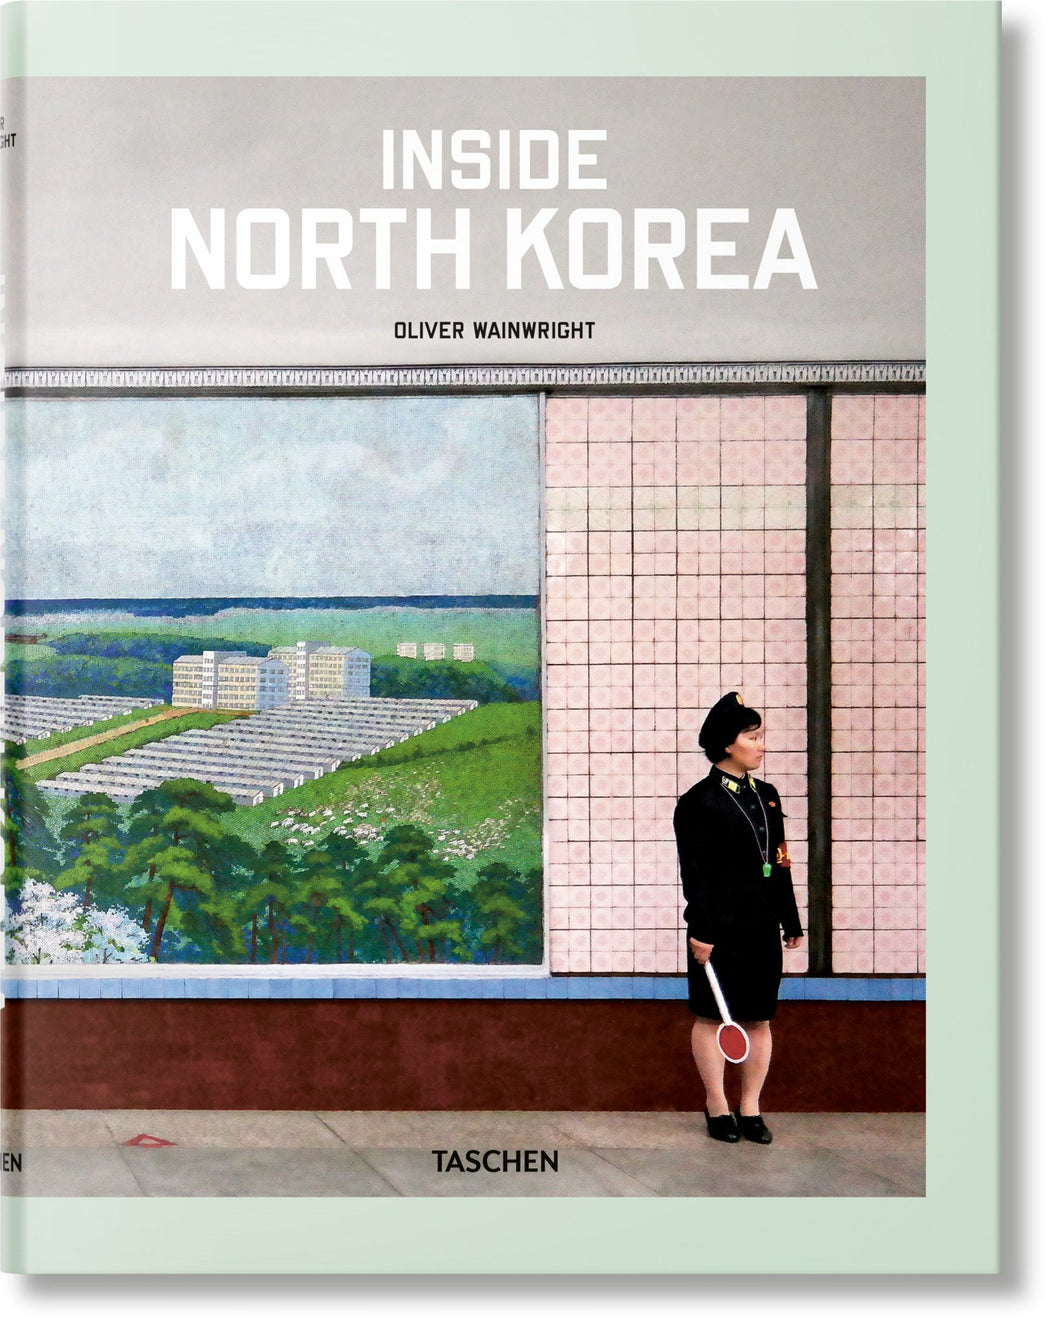 Inside North Korea - Oliver Wainwright - Boekenmarkt de Markies